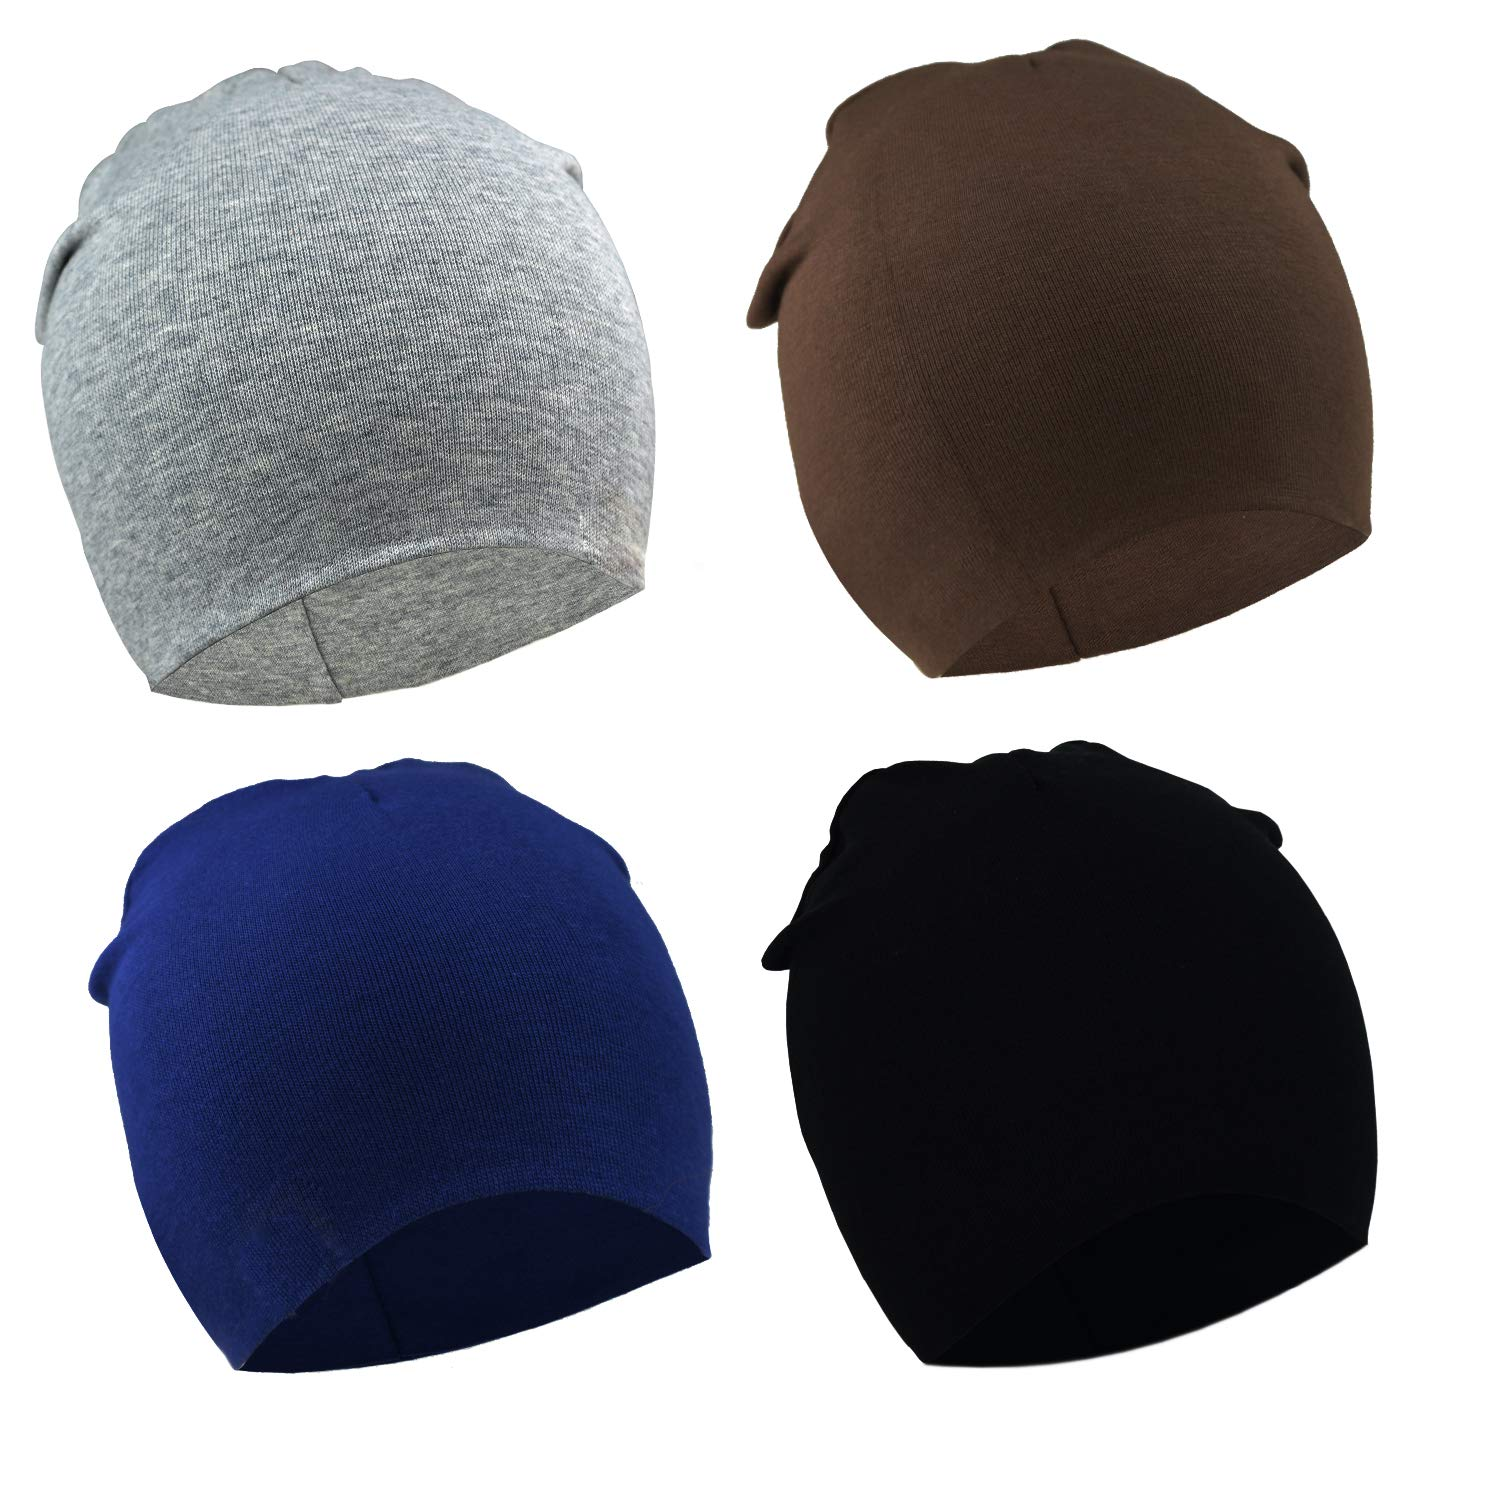 cb8cb3e3696 Top 10 wholesale Fashion Beanies Online - Chinabrands.com